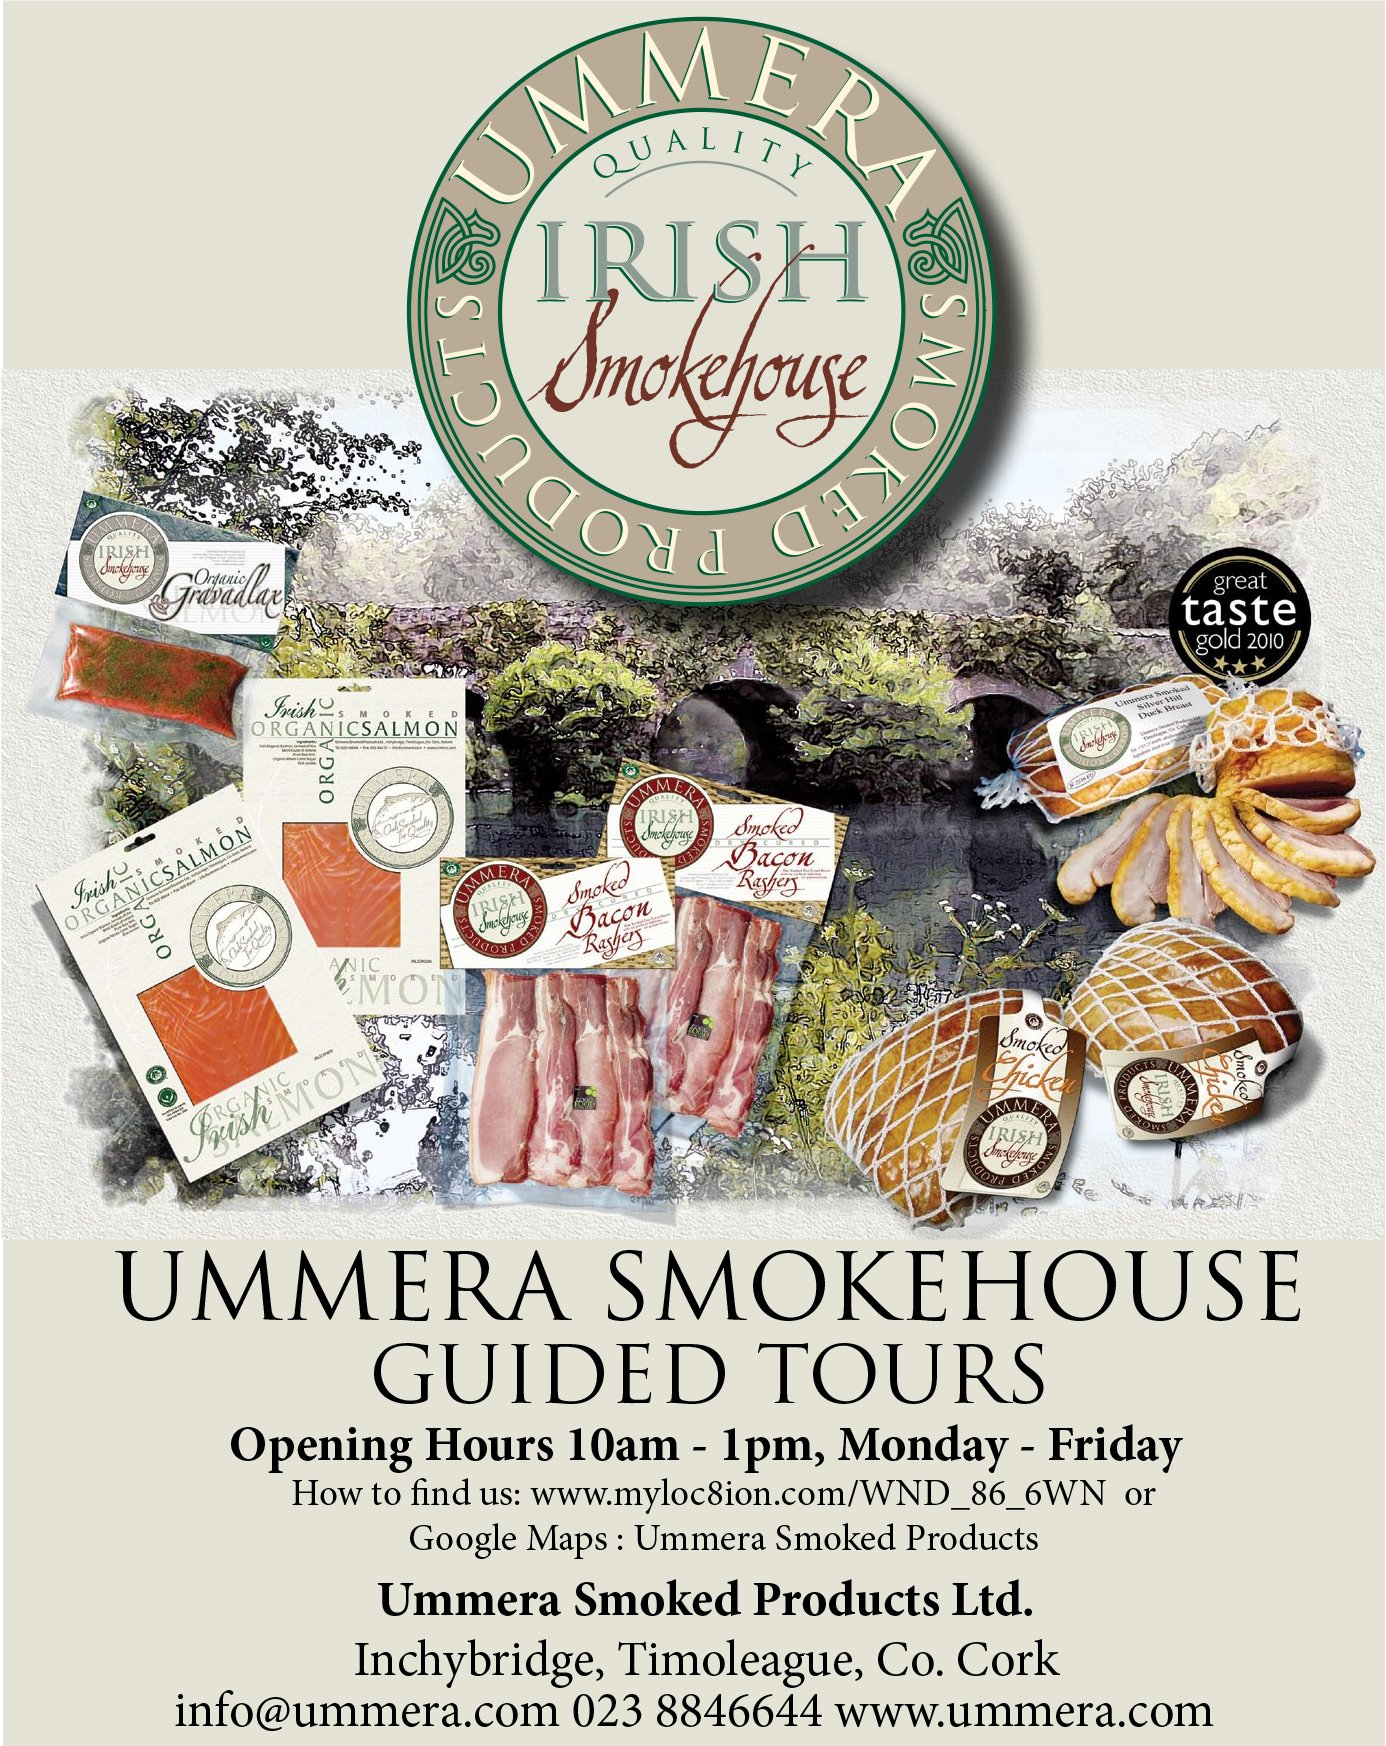 Ummera Smokehouse - Tours